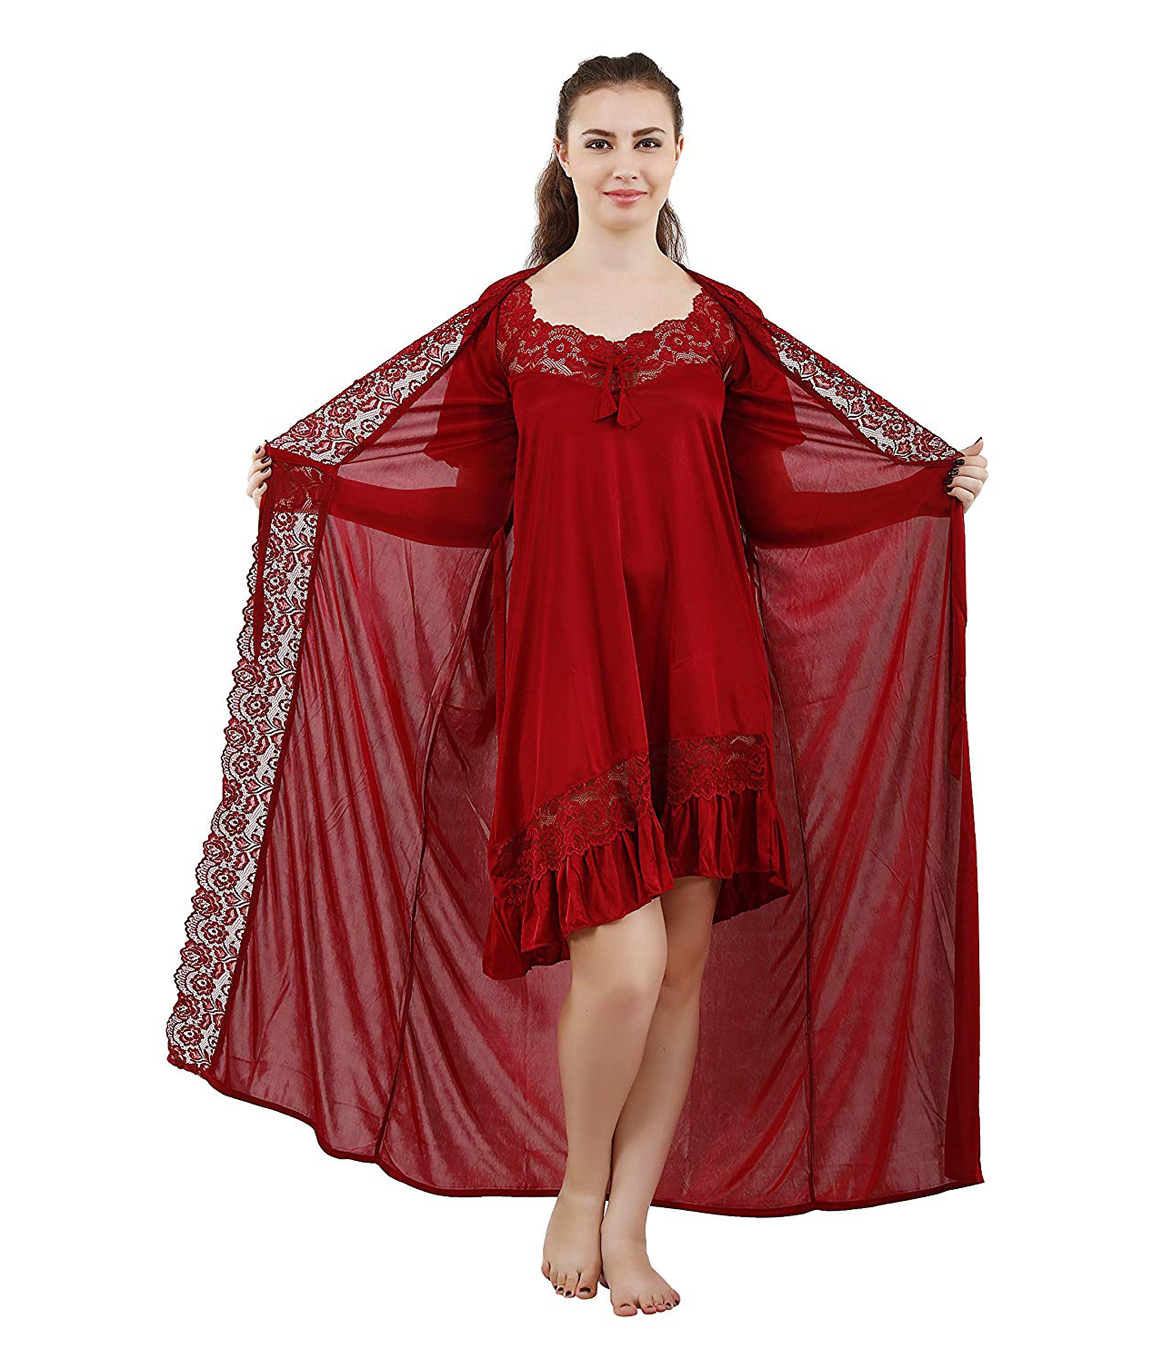 Romaisa Women`s Satin Lace Work Nightdress with Robe (Size - Small, Medium, Large) (Pack of 2 Pcs) COLOUR : MAROON